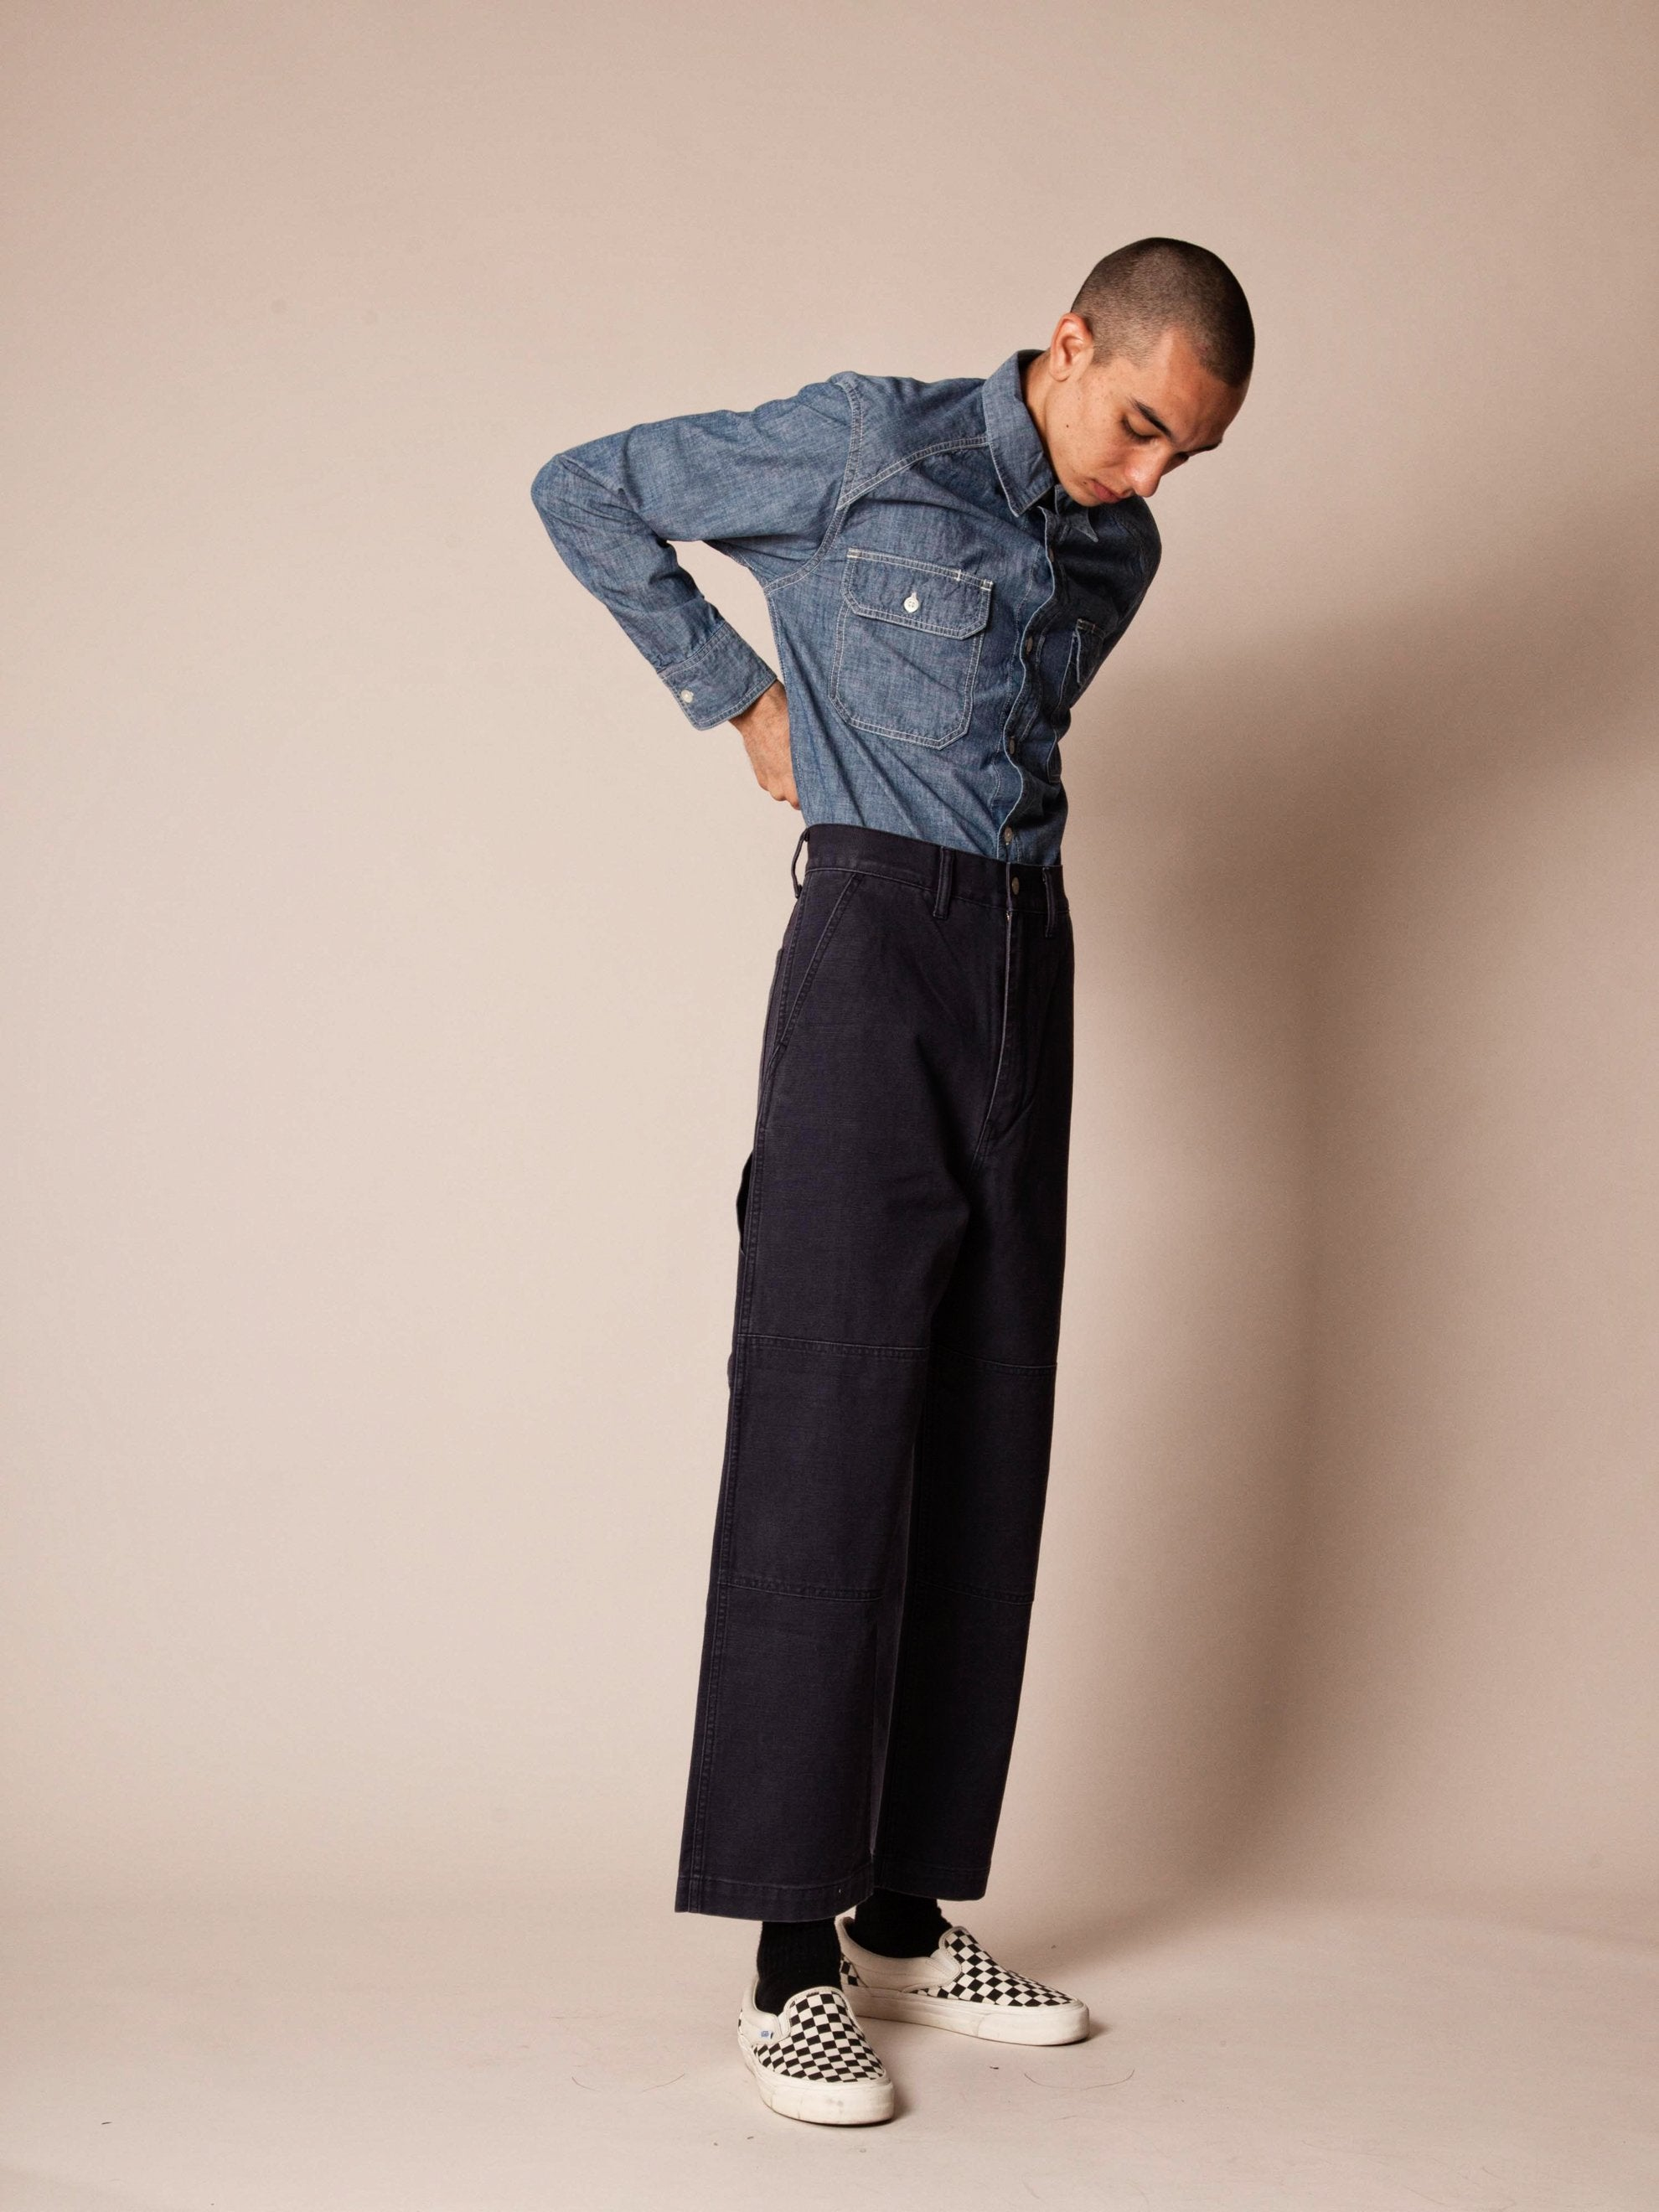 Olive Drab Armstrong Trousers (Duck) 8